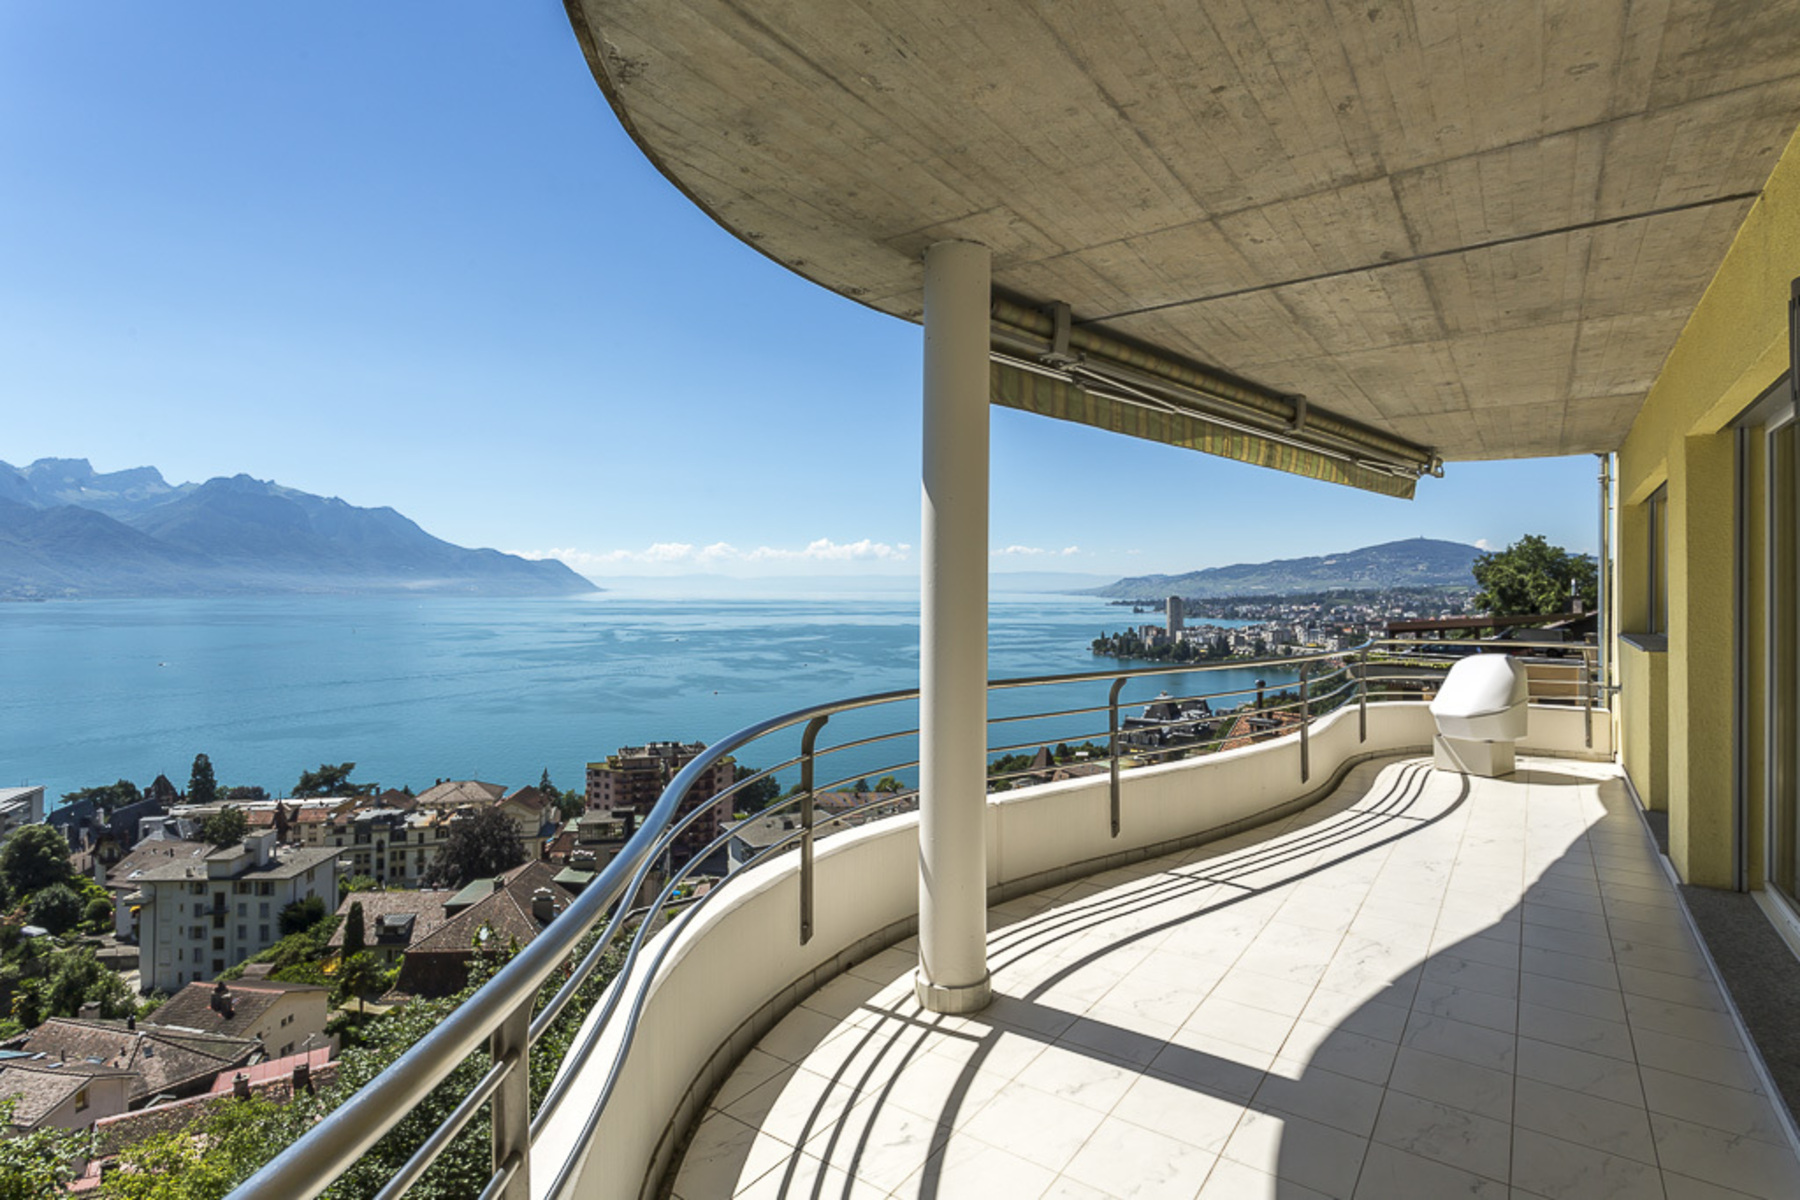 sales property at Stunning 4.5 room apartment enjoying total peace and quiet Unobstructed views o